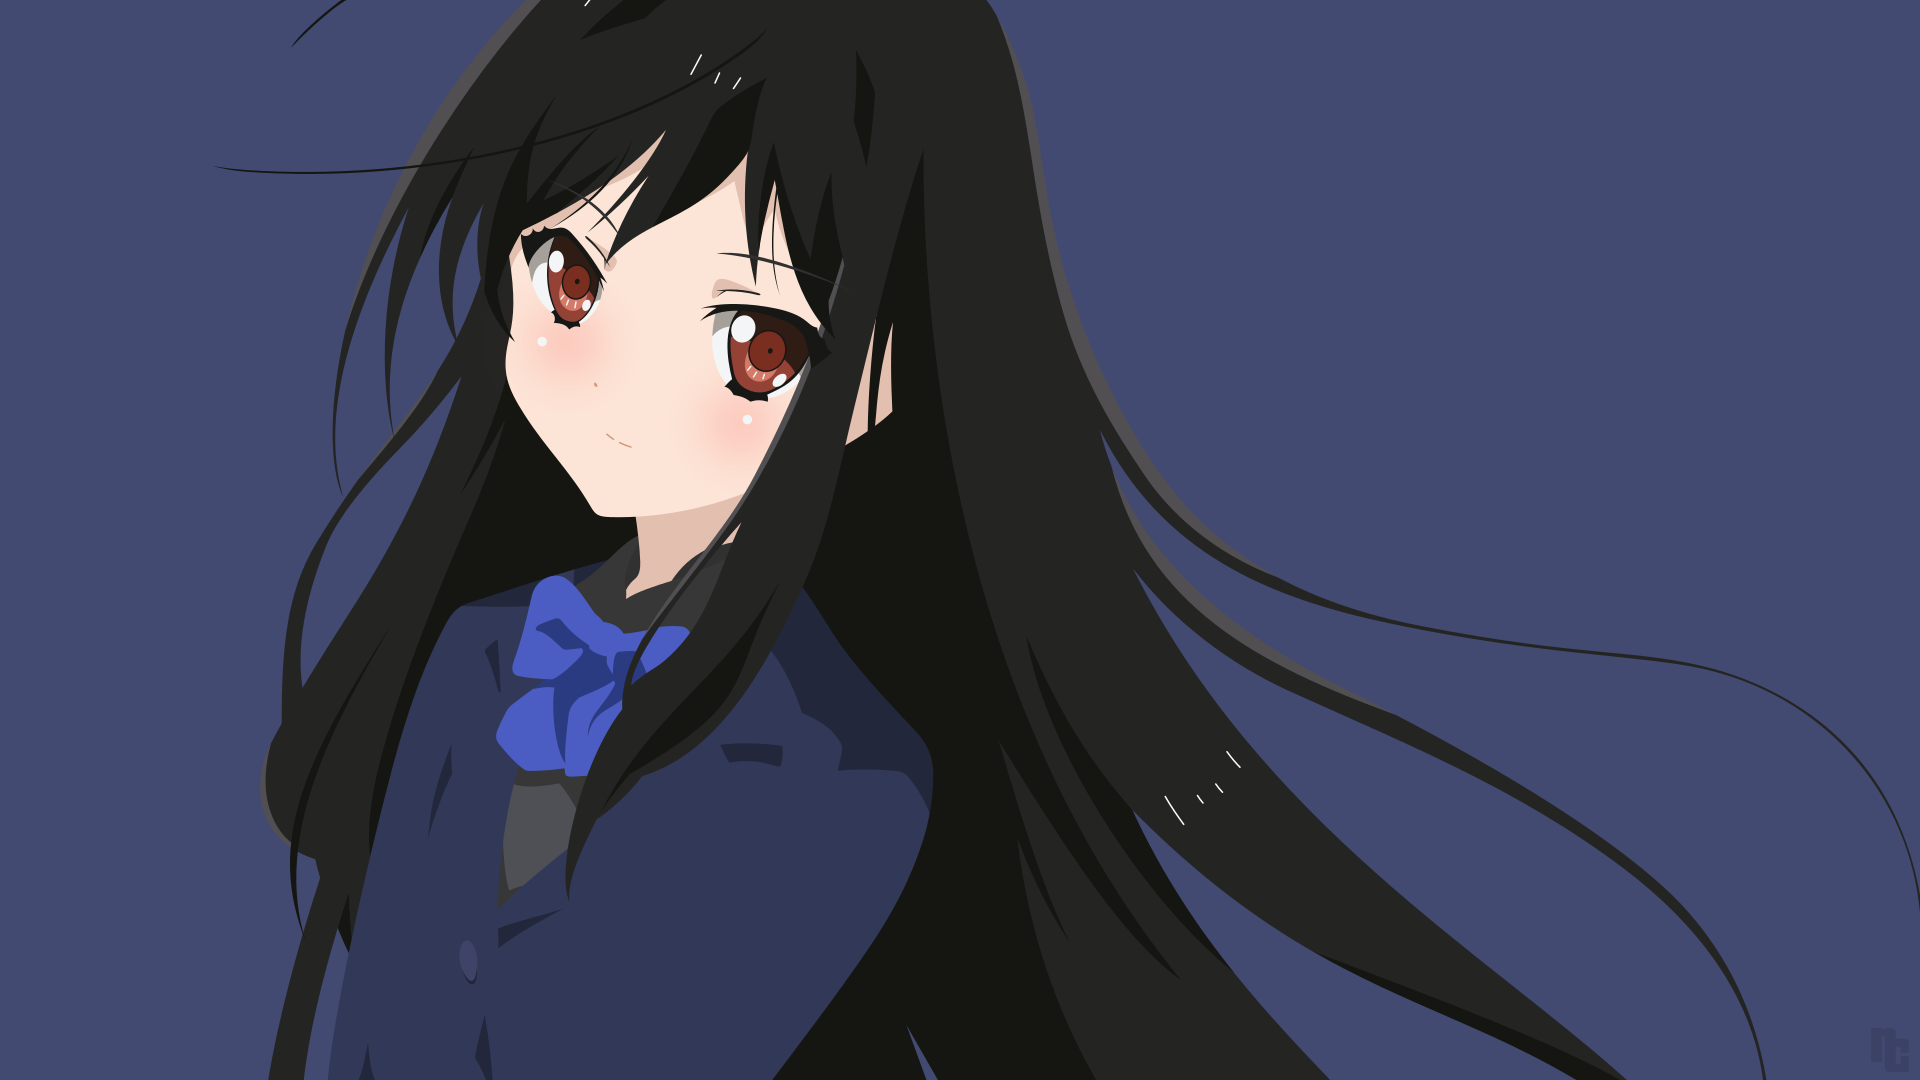 Kuroyukihime | Accel World Wiki | FANDOM powered by Wikia